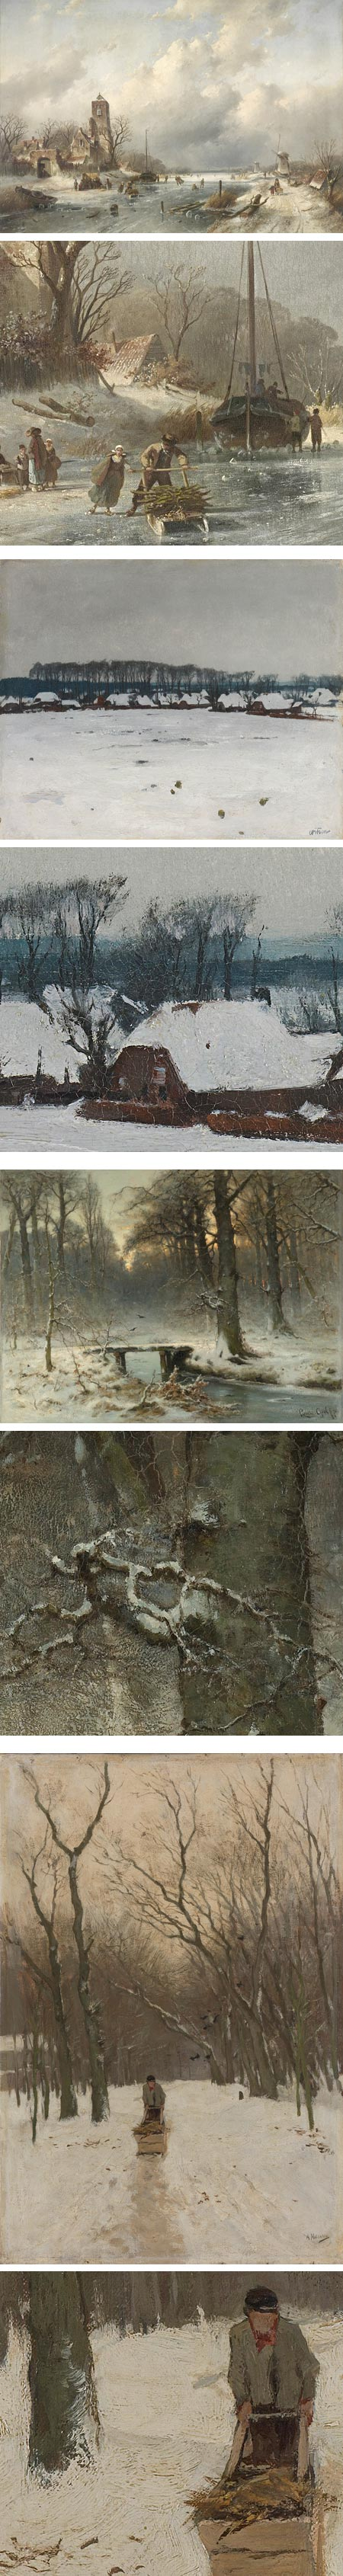 Dutch Winters at Schiphol, Rijksmuseum: Charles Lickert, Willem Witsen, Louis Apol, Anton Mauve